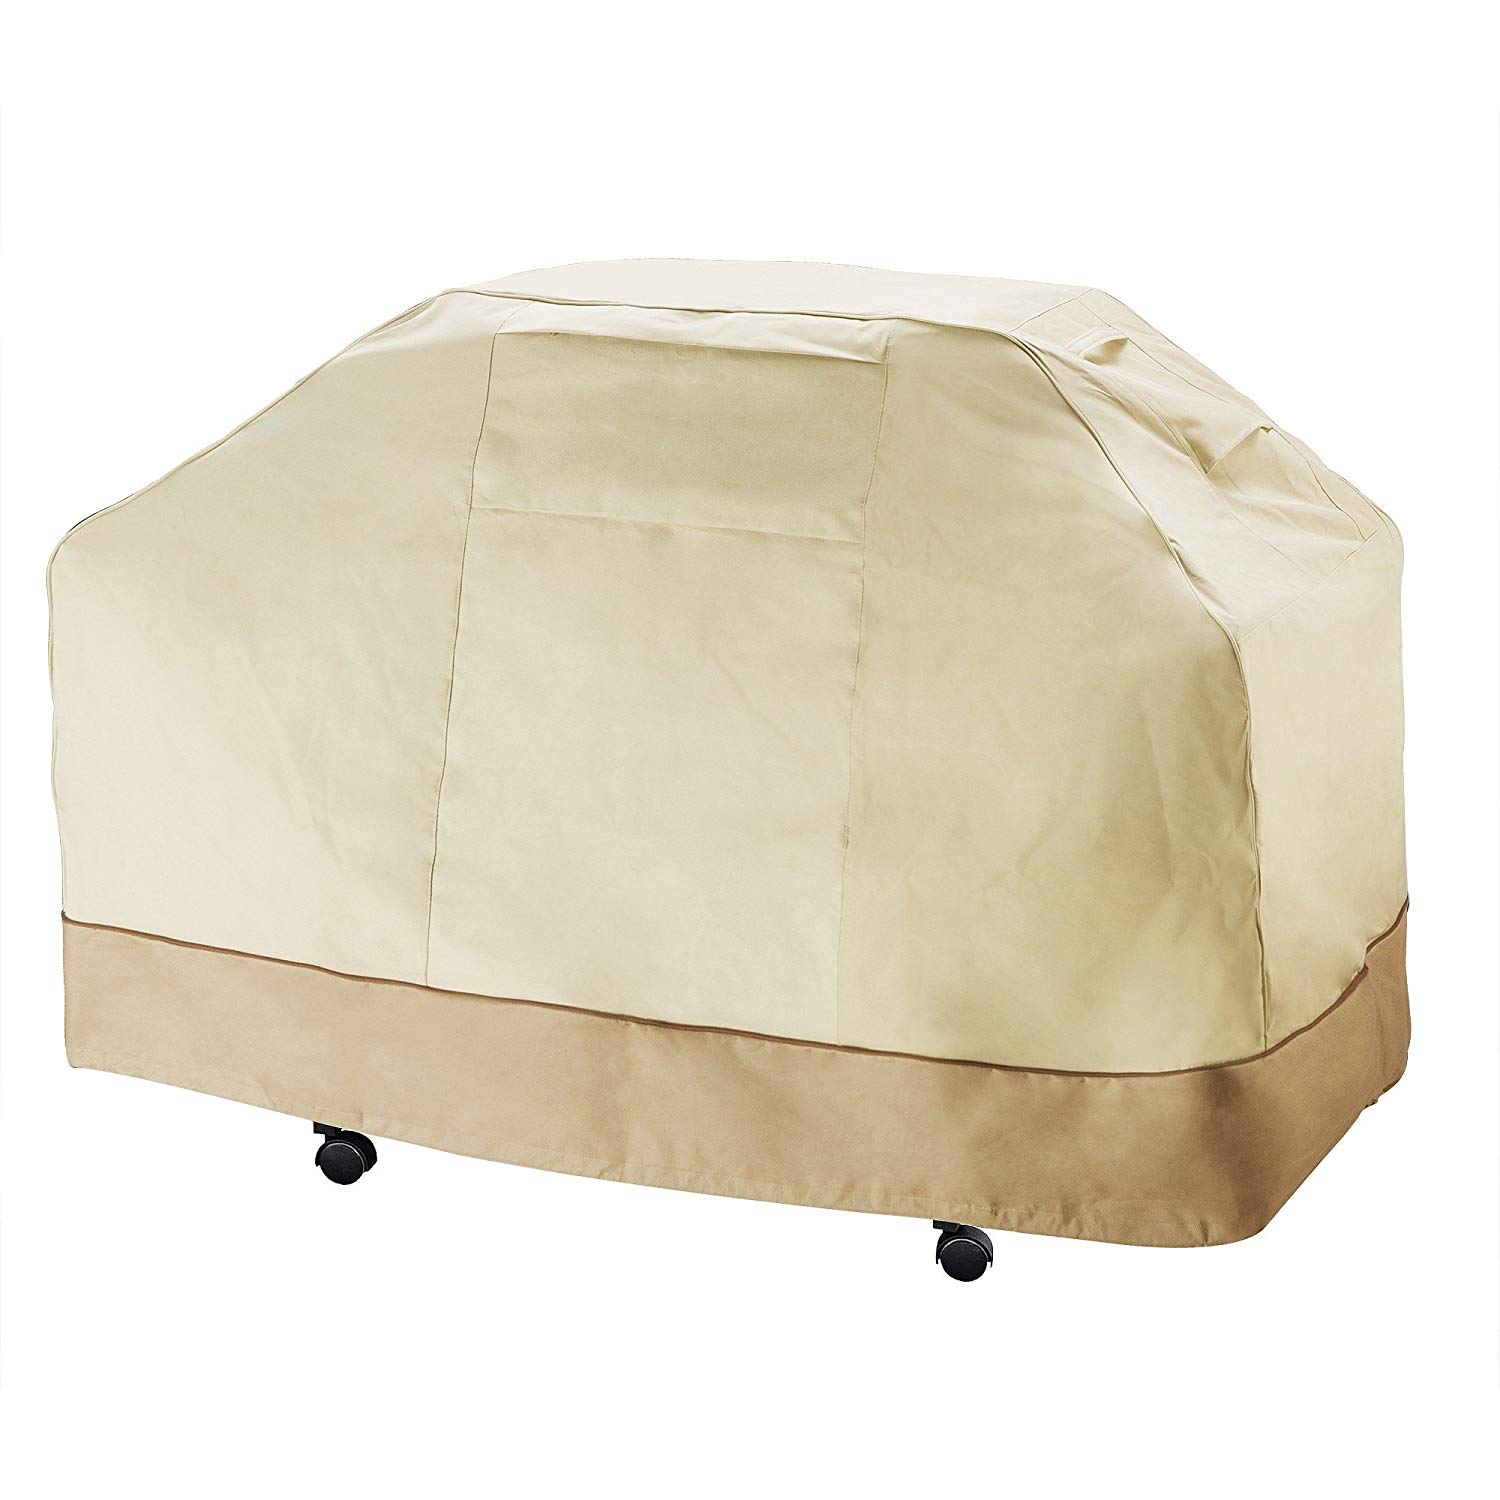 Ln 1 Piece Beige Brown Outdoor Camping Grill Cover Waterproof 70 Inch, Water Repellent BBQ Cover Extra Large Durable Patio Barbecue Cover Heavy Duty Buckle Material Elastic Hem Toggle, Fabric